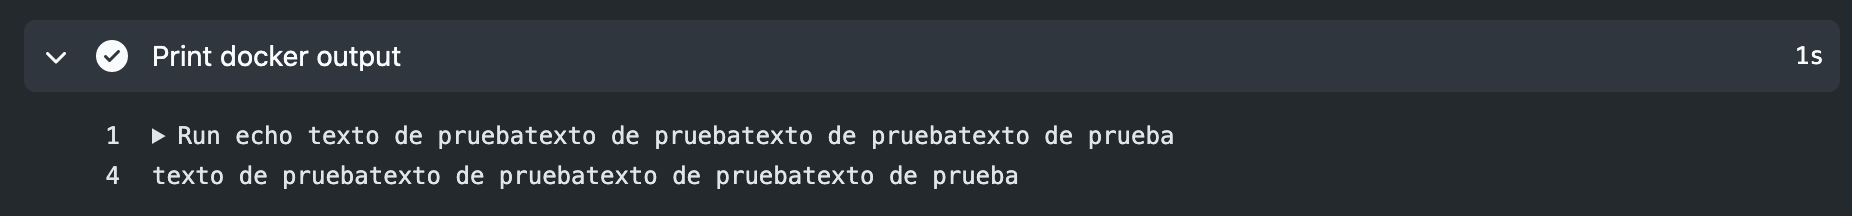 captura consola acción docker